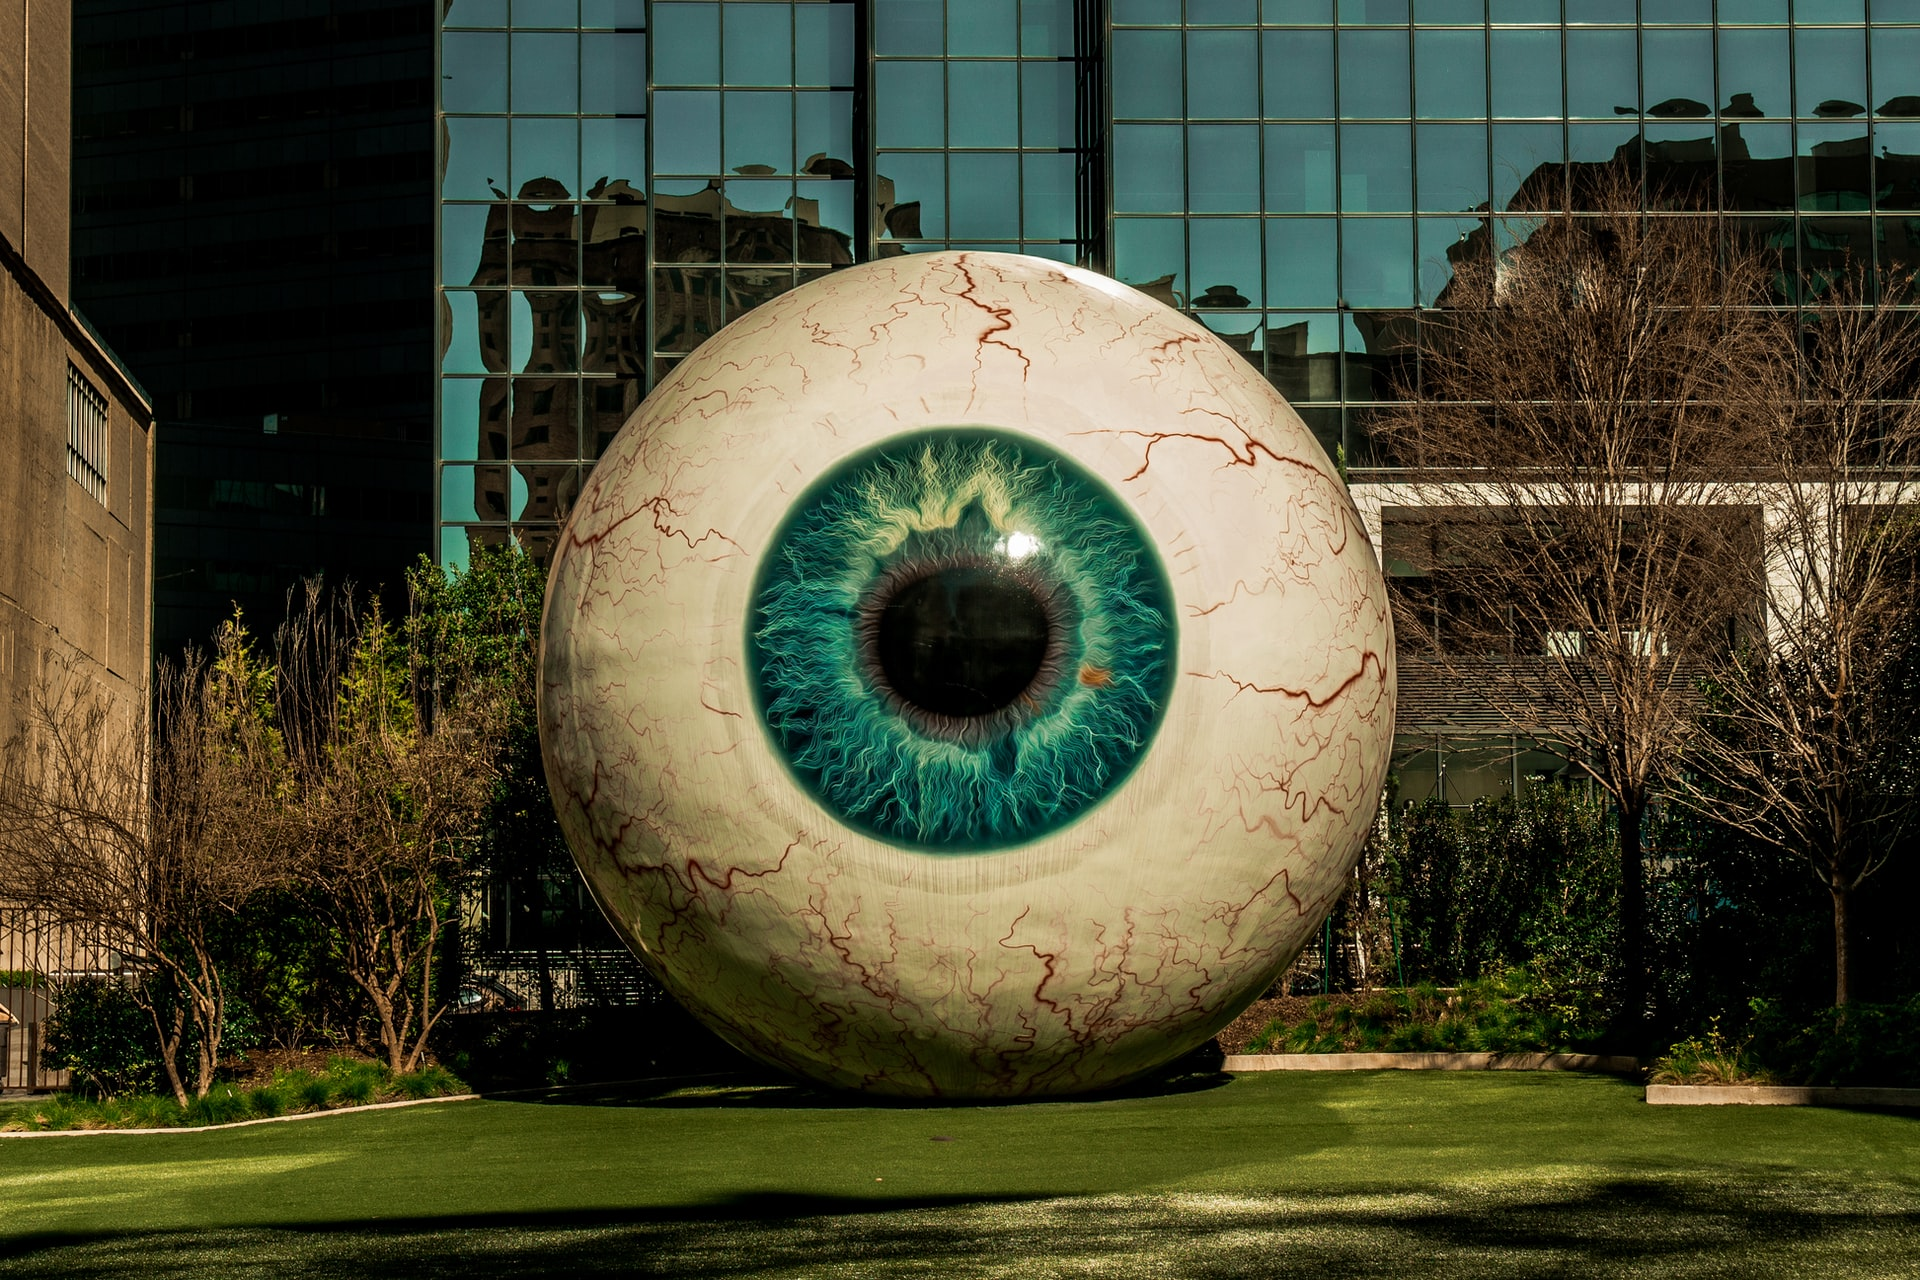 Sculpture of giant eyeball